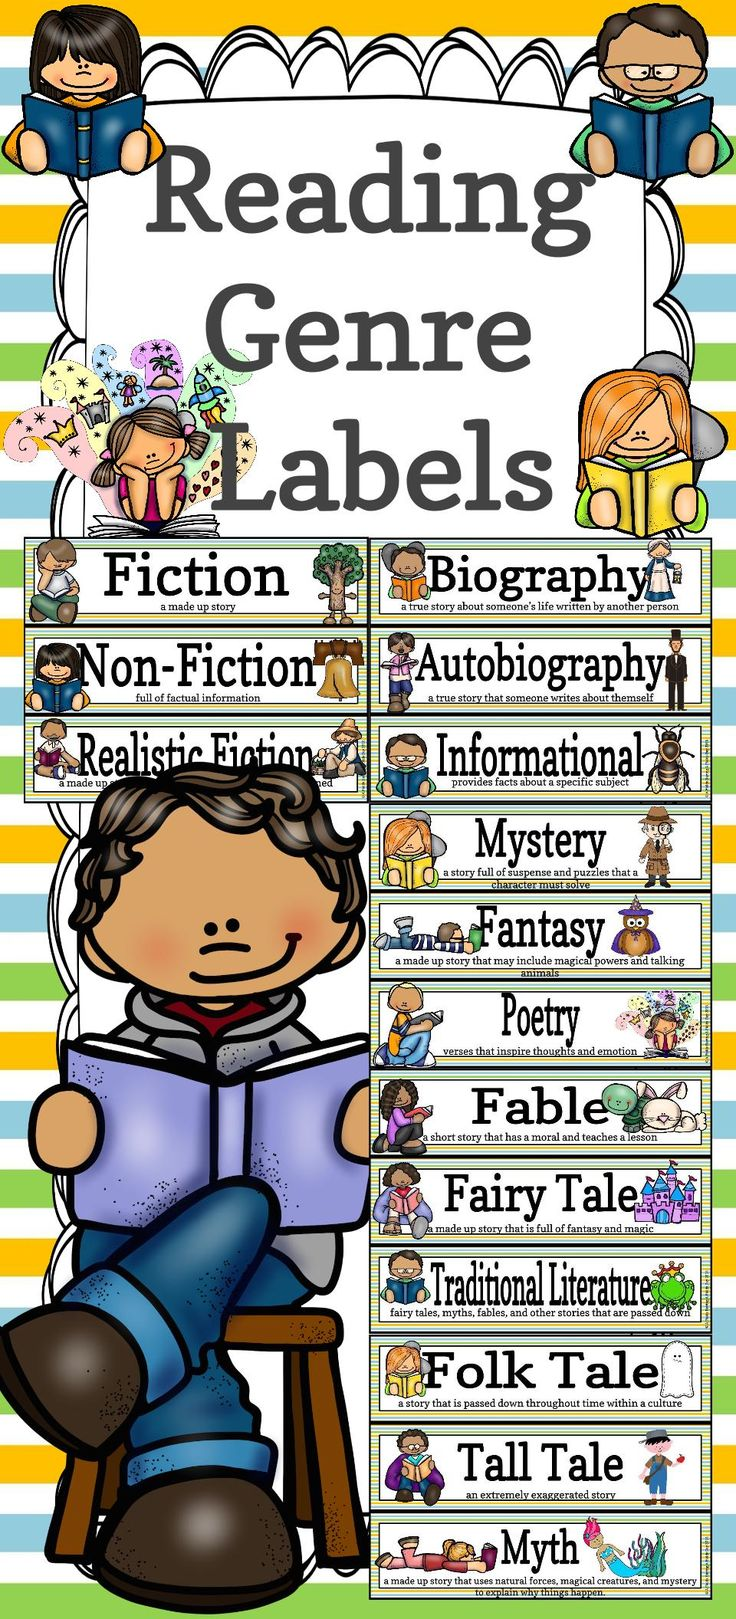 These 21 reading genre labels are great for library and classroom organization! Use on shelves, book bins, or even as decor! https://www.teacherspayteachers.com/Product/Reading-Genre-Labels-1910351